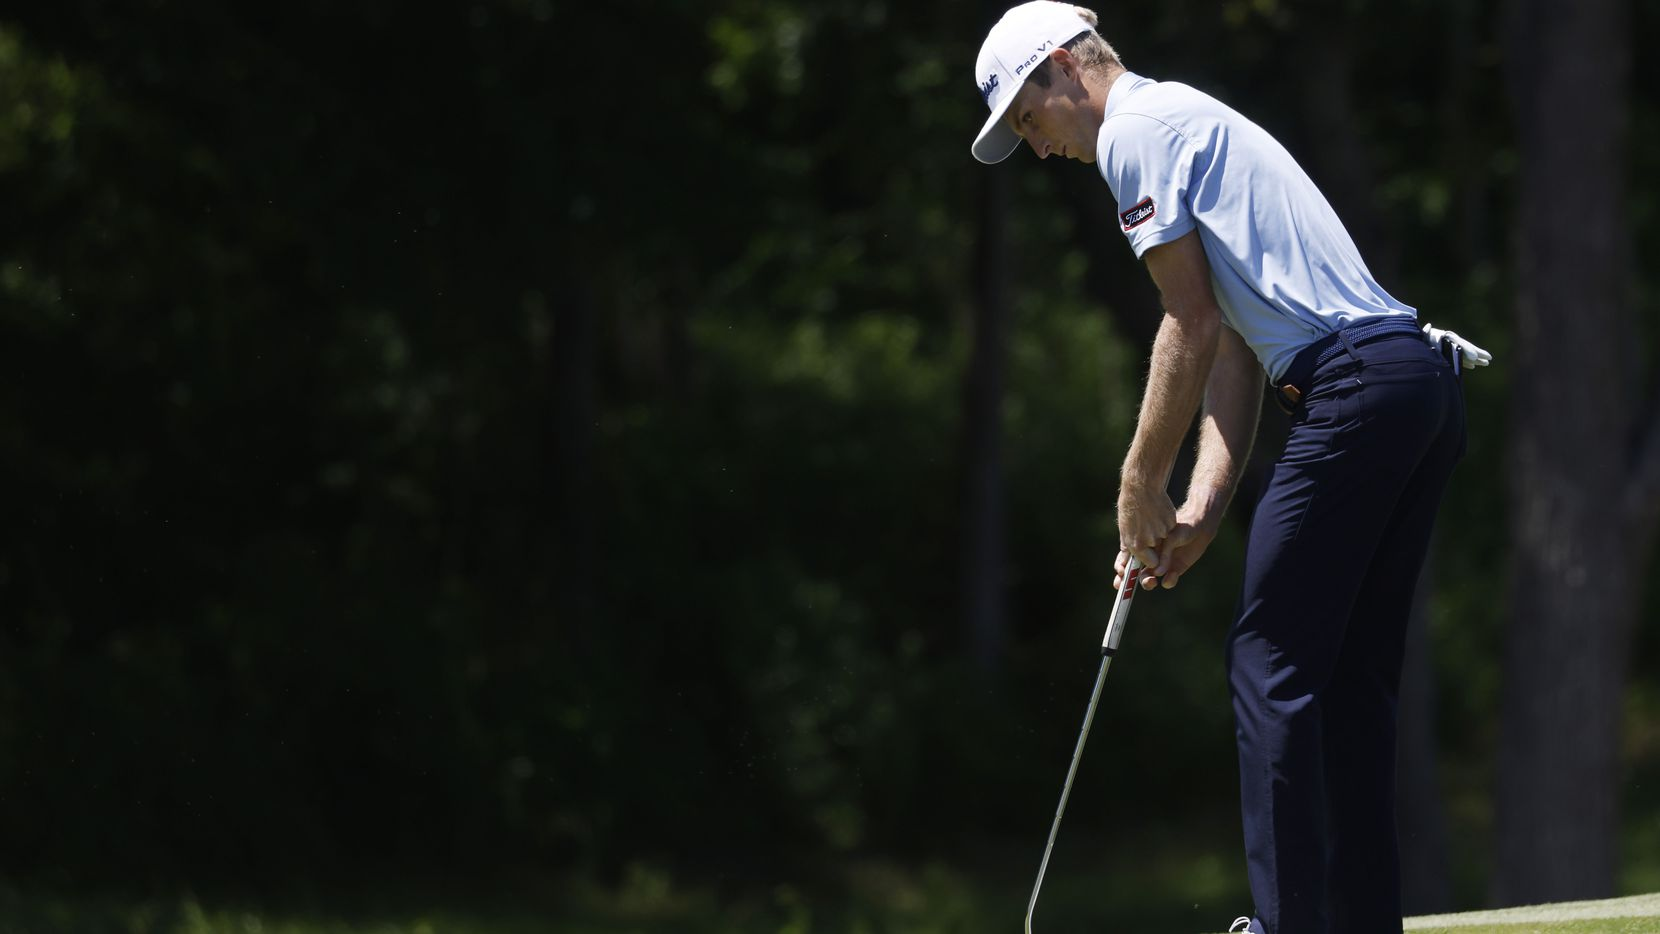 Will Zalatoris watches his putt on the 9th hole during round 1 of the AT&T Byron Nelson  at TPC Craig Ranch on Thursday, May 13, 2021in McKinney, Texas.